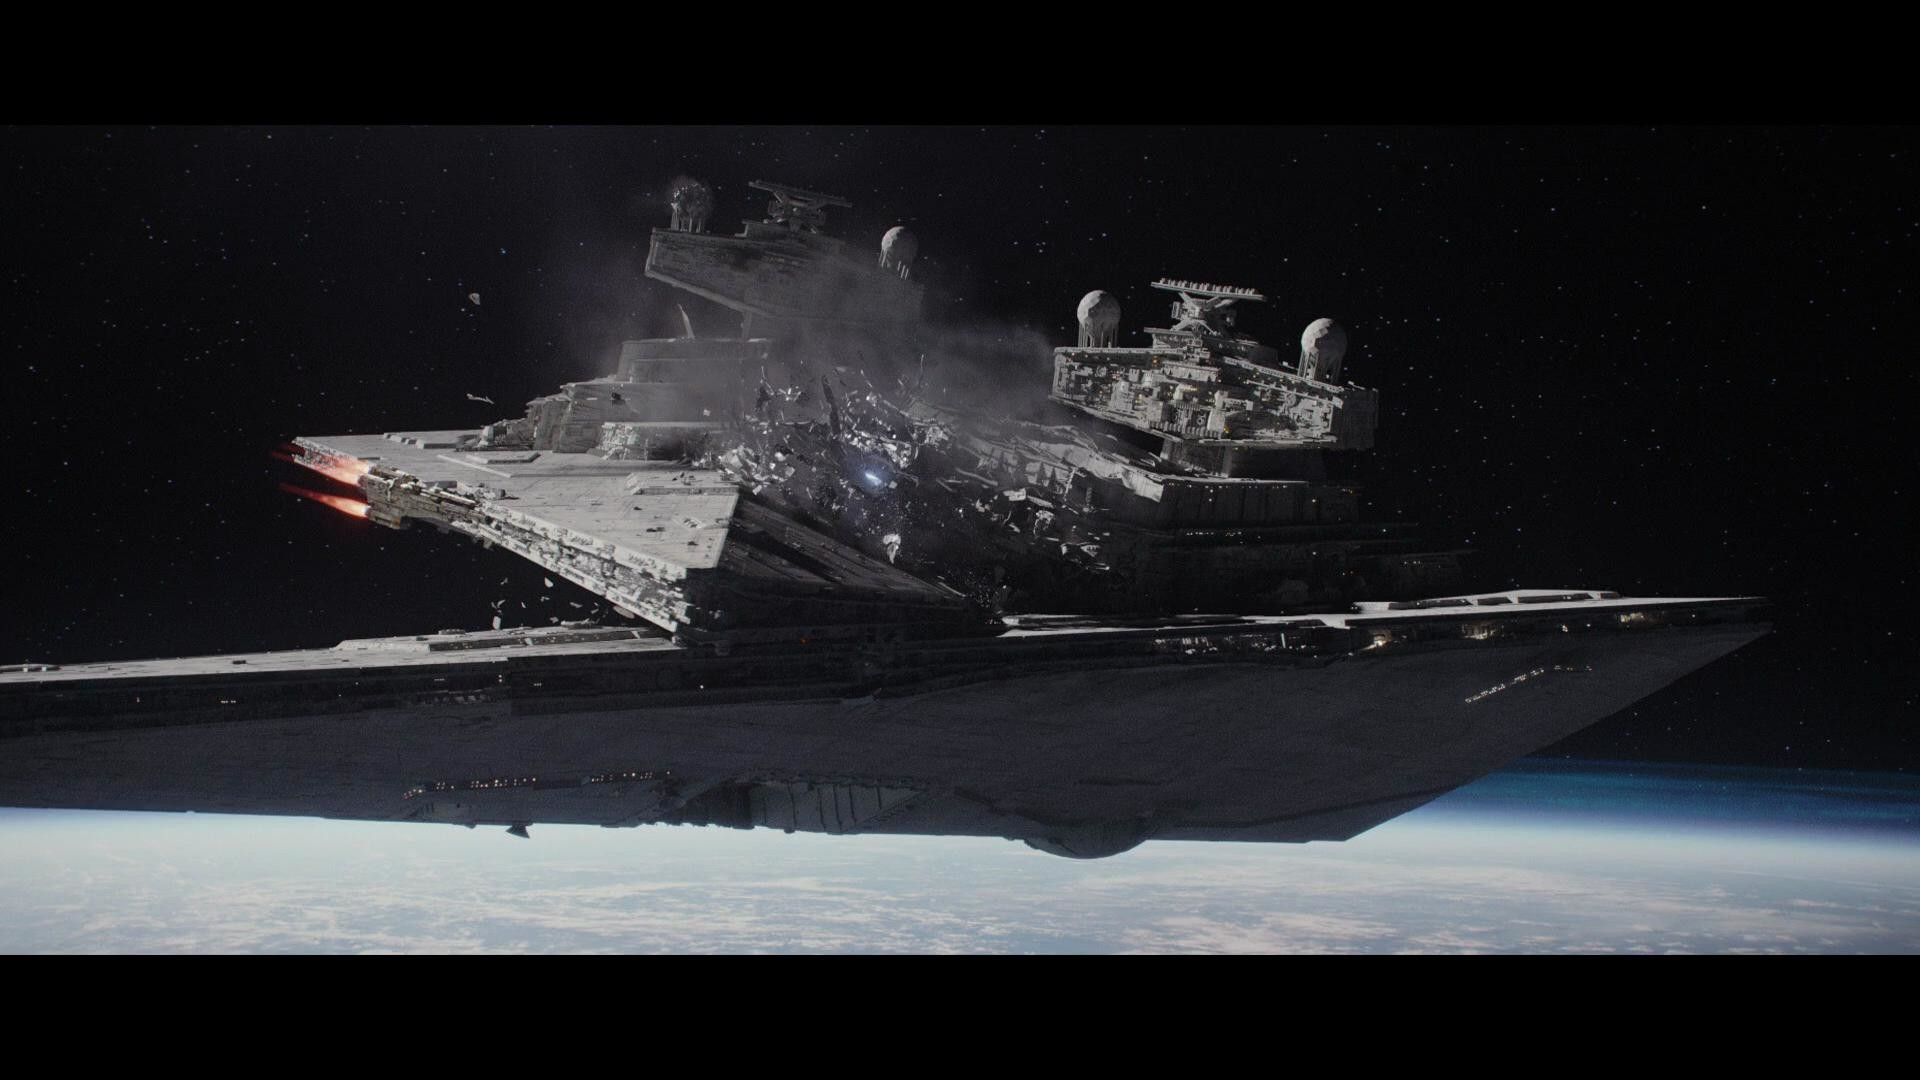 Star Wars Rogue One Star Destroyer Crash 1852242 Hd Wallpaper